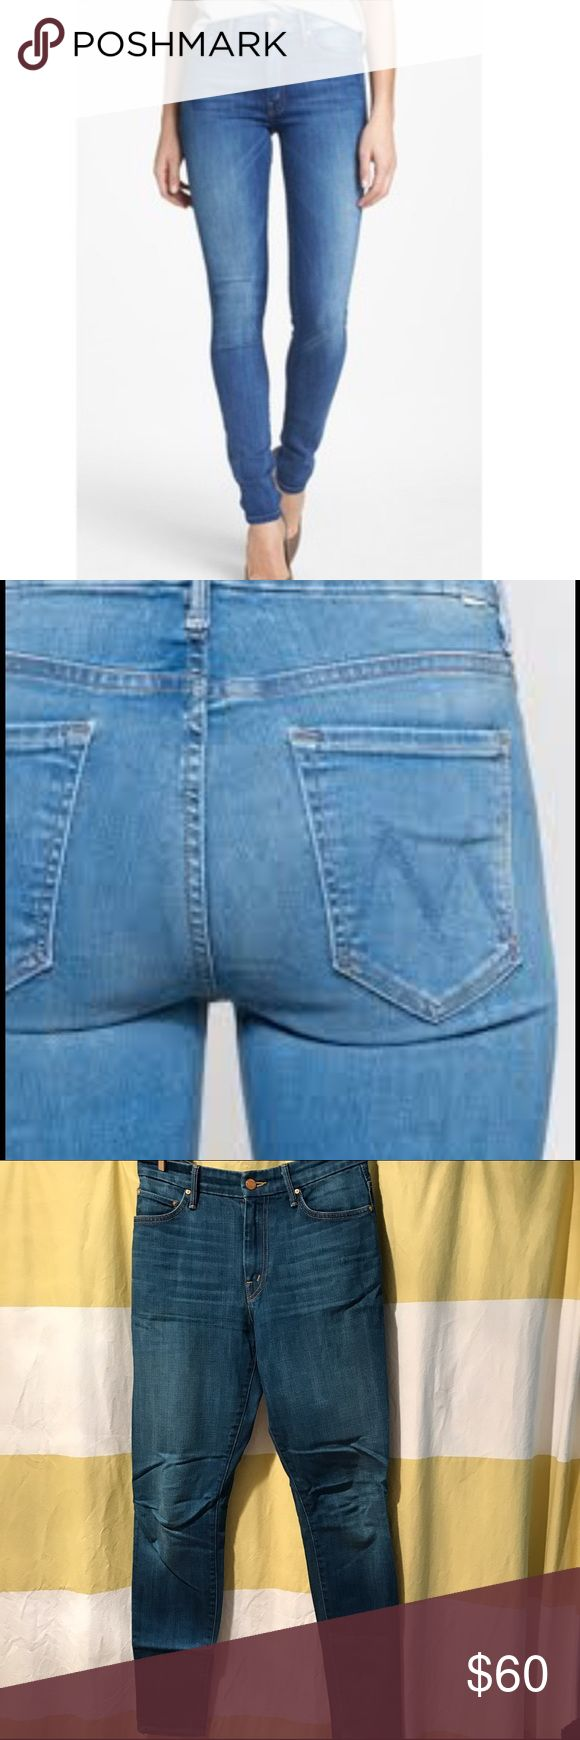 MOTHER High Waisted Looker in Out of the Blue Super cute High Waisted Looker Jeans from MOTHER Denim. Worn less than five times, in like new condition. 98% cotton, 2% elastine. MOTHER Jeans Skinny